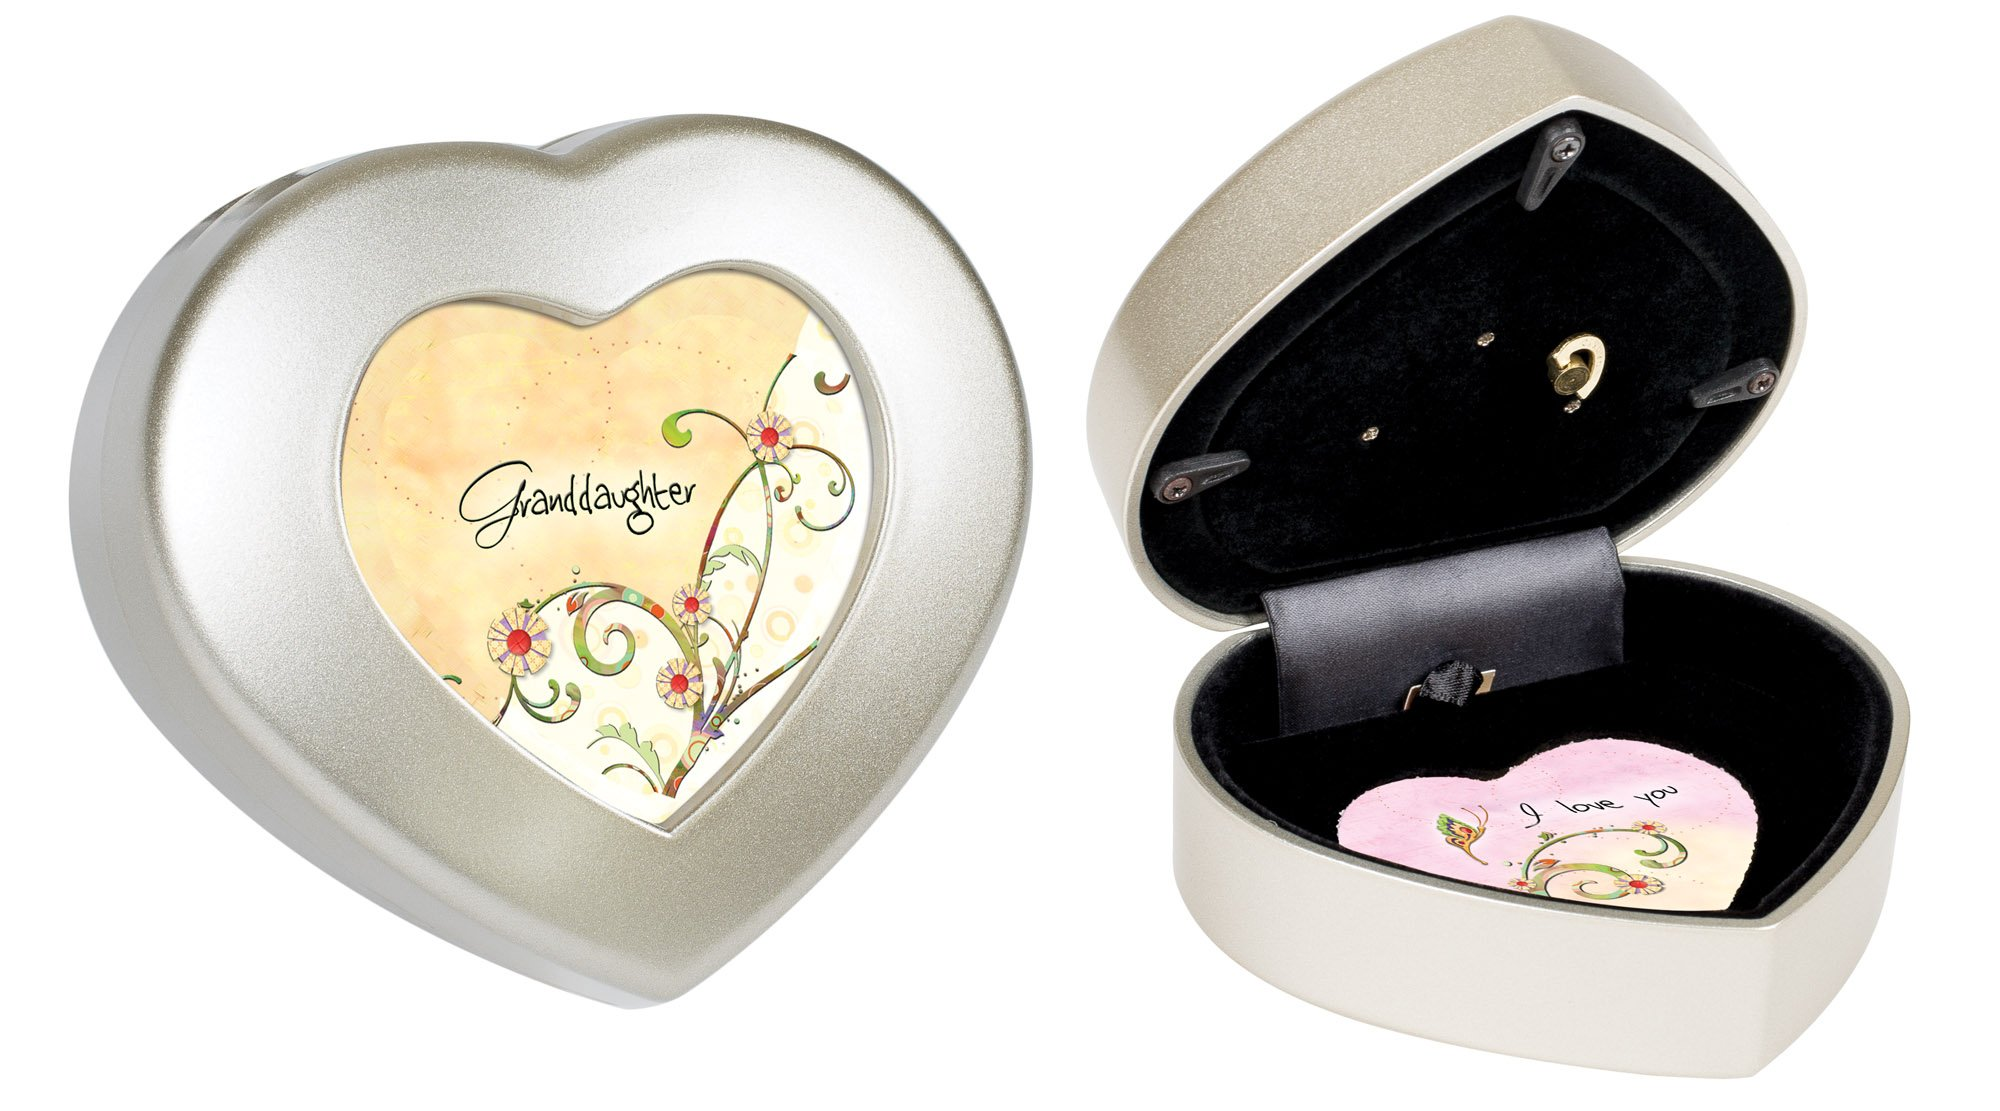 Cottage Garden Granddaughter I Love You Champagne Silvertone Jewelry Music Box Plays Light Up My Life